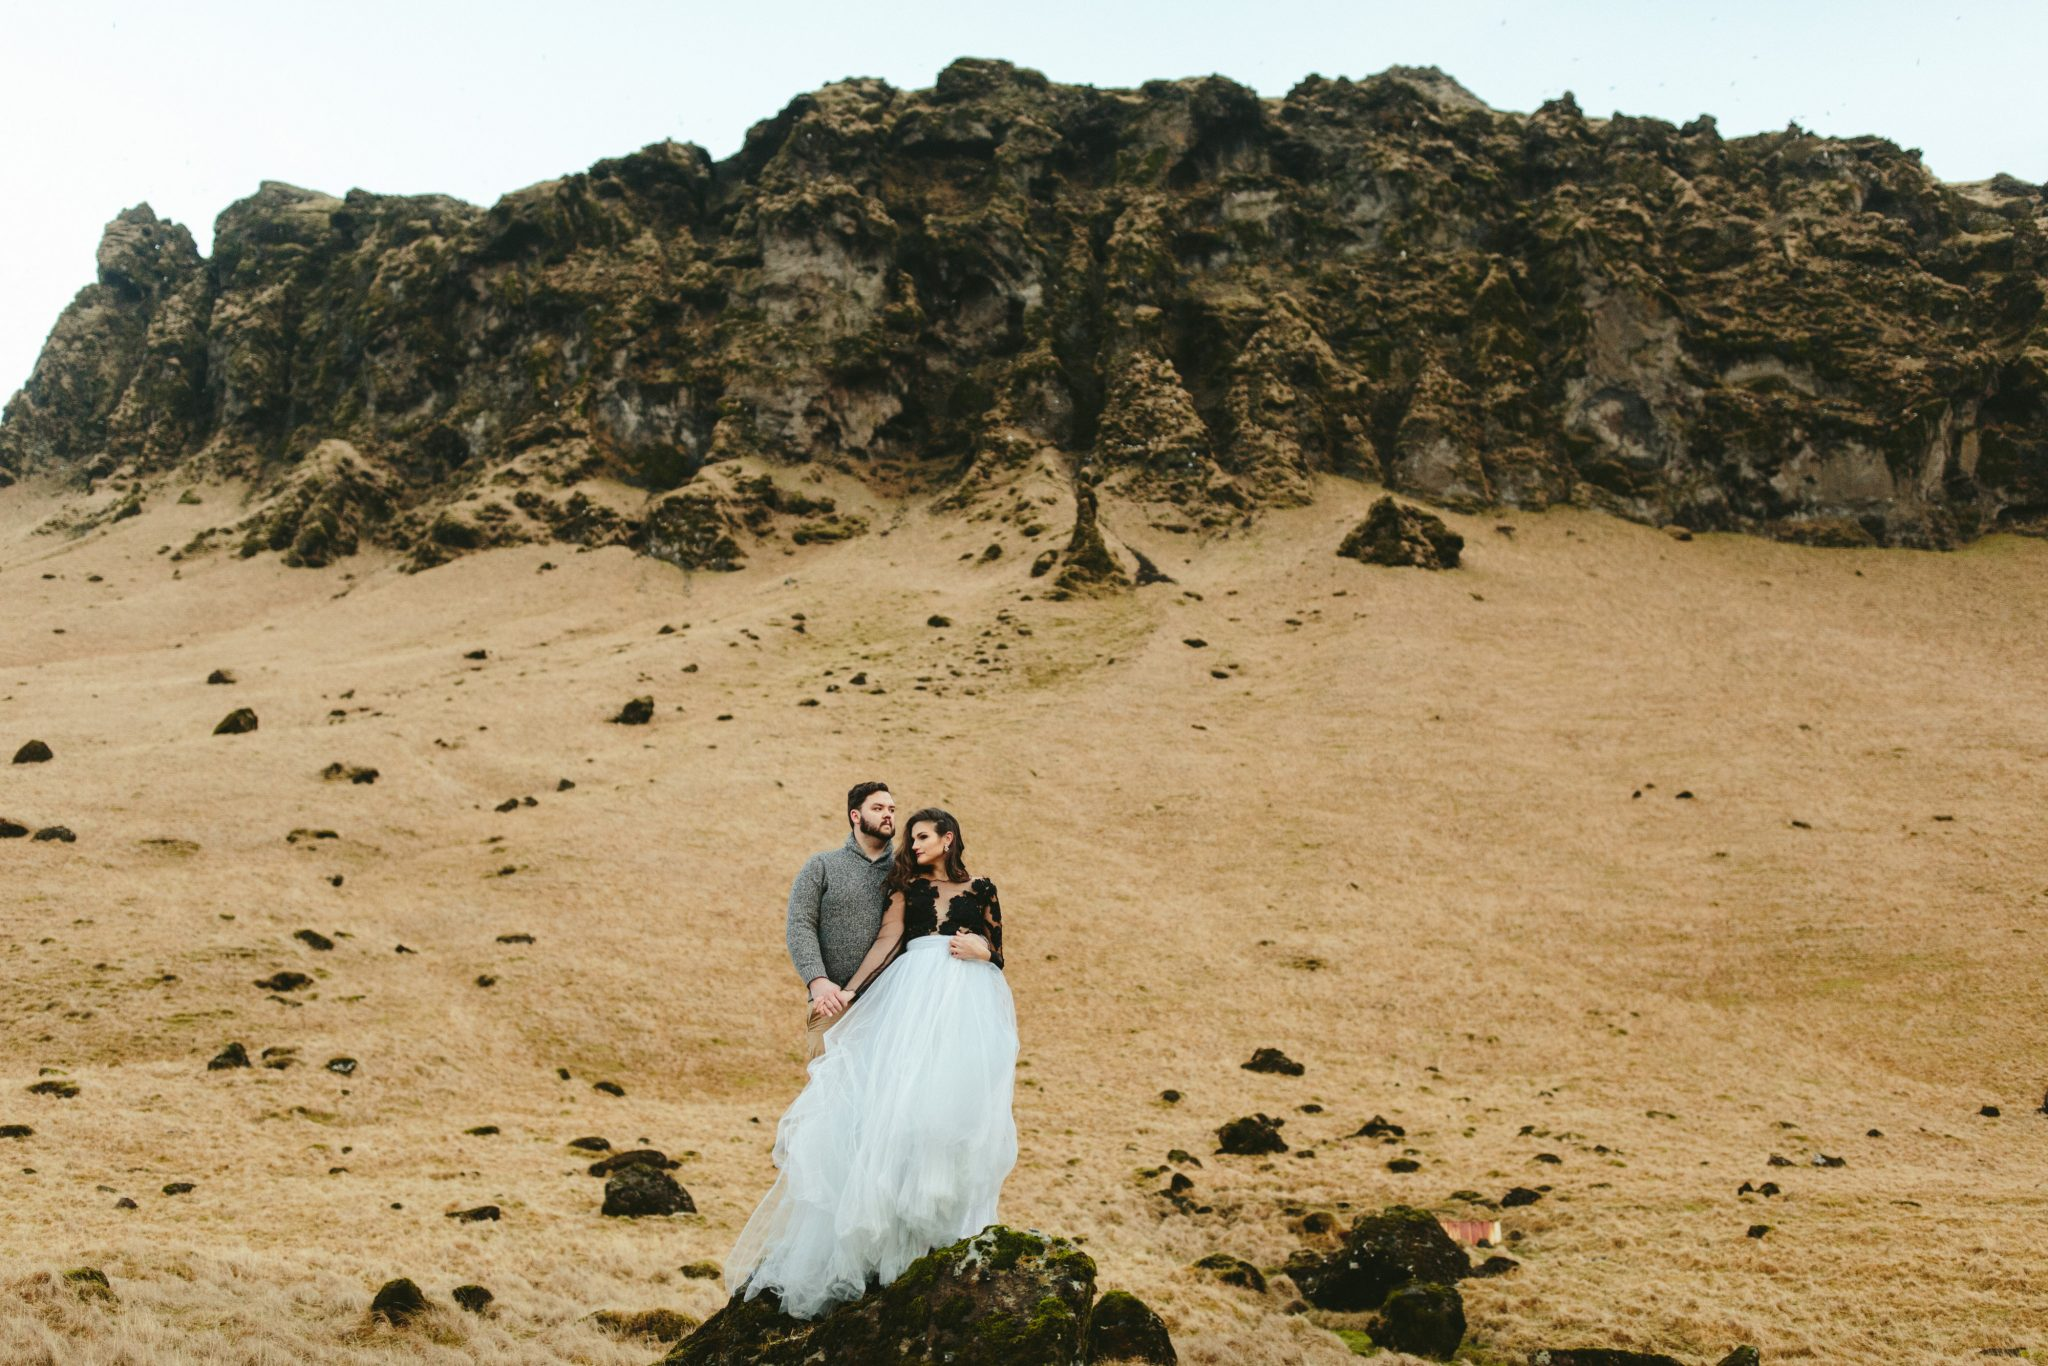 destination elopement in iceland